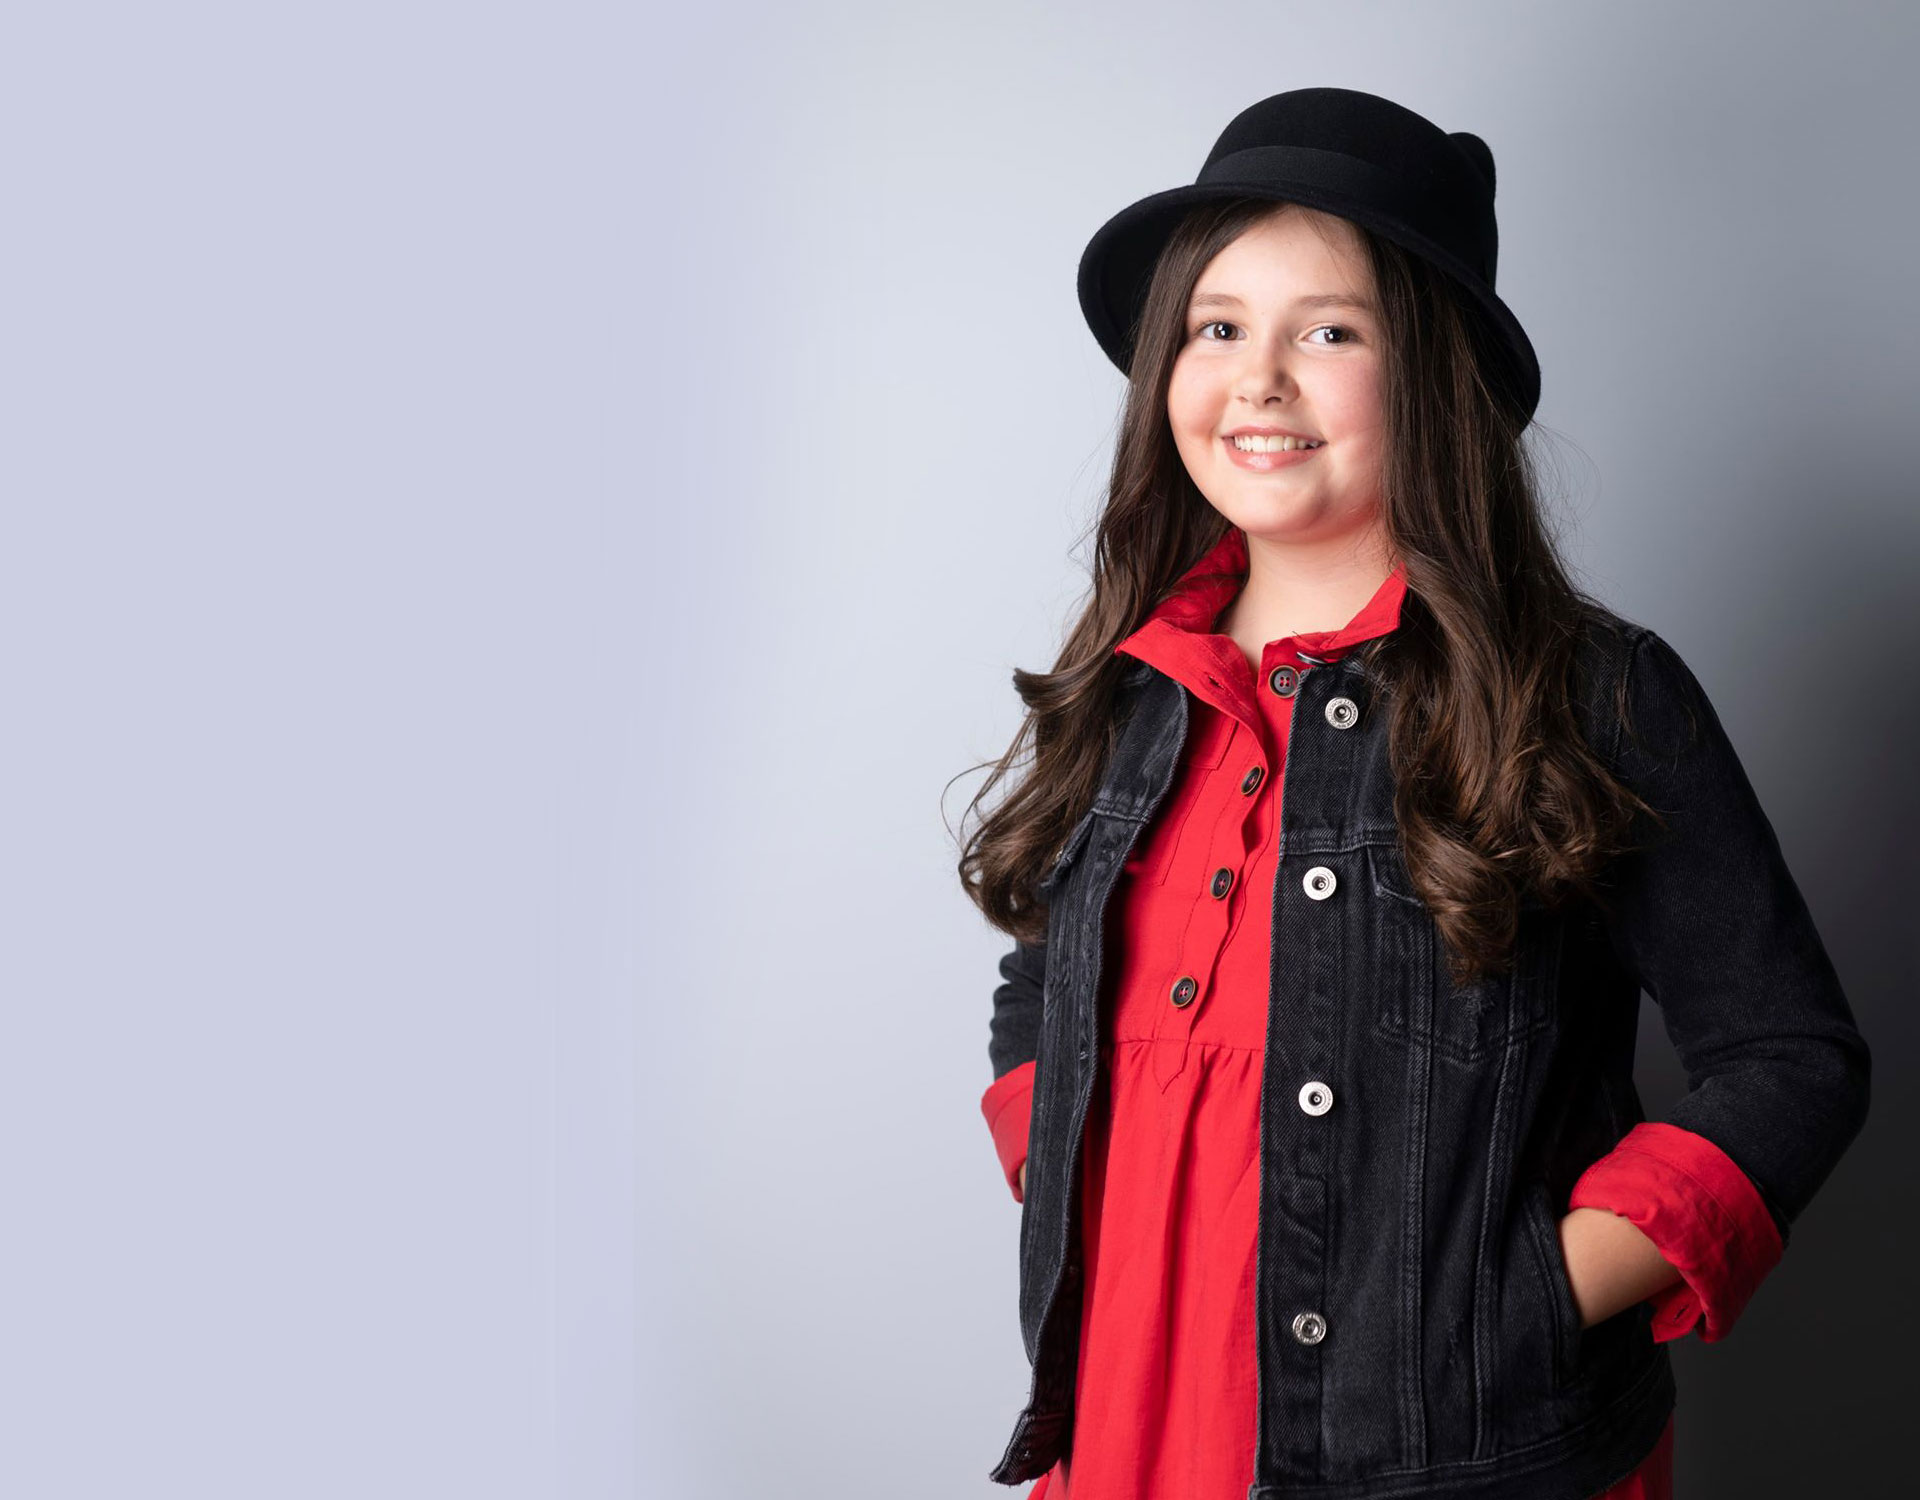 JOANA ALMEIDA - Junior Eurovision Song Contest background image